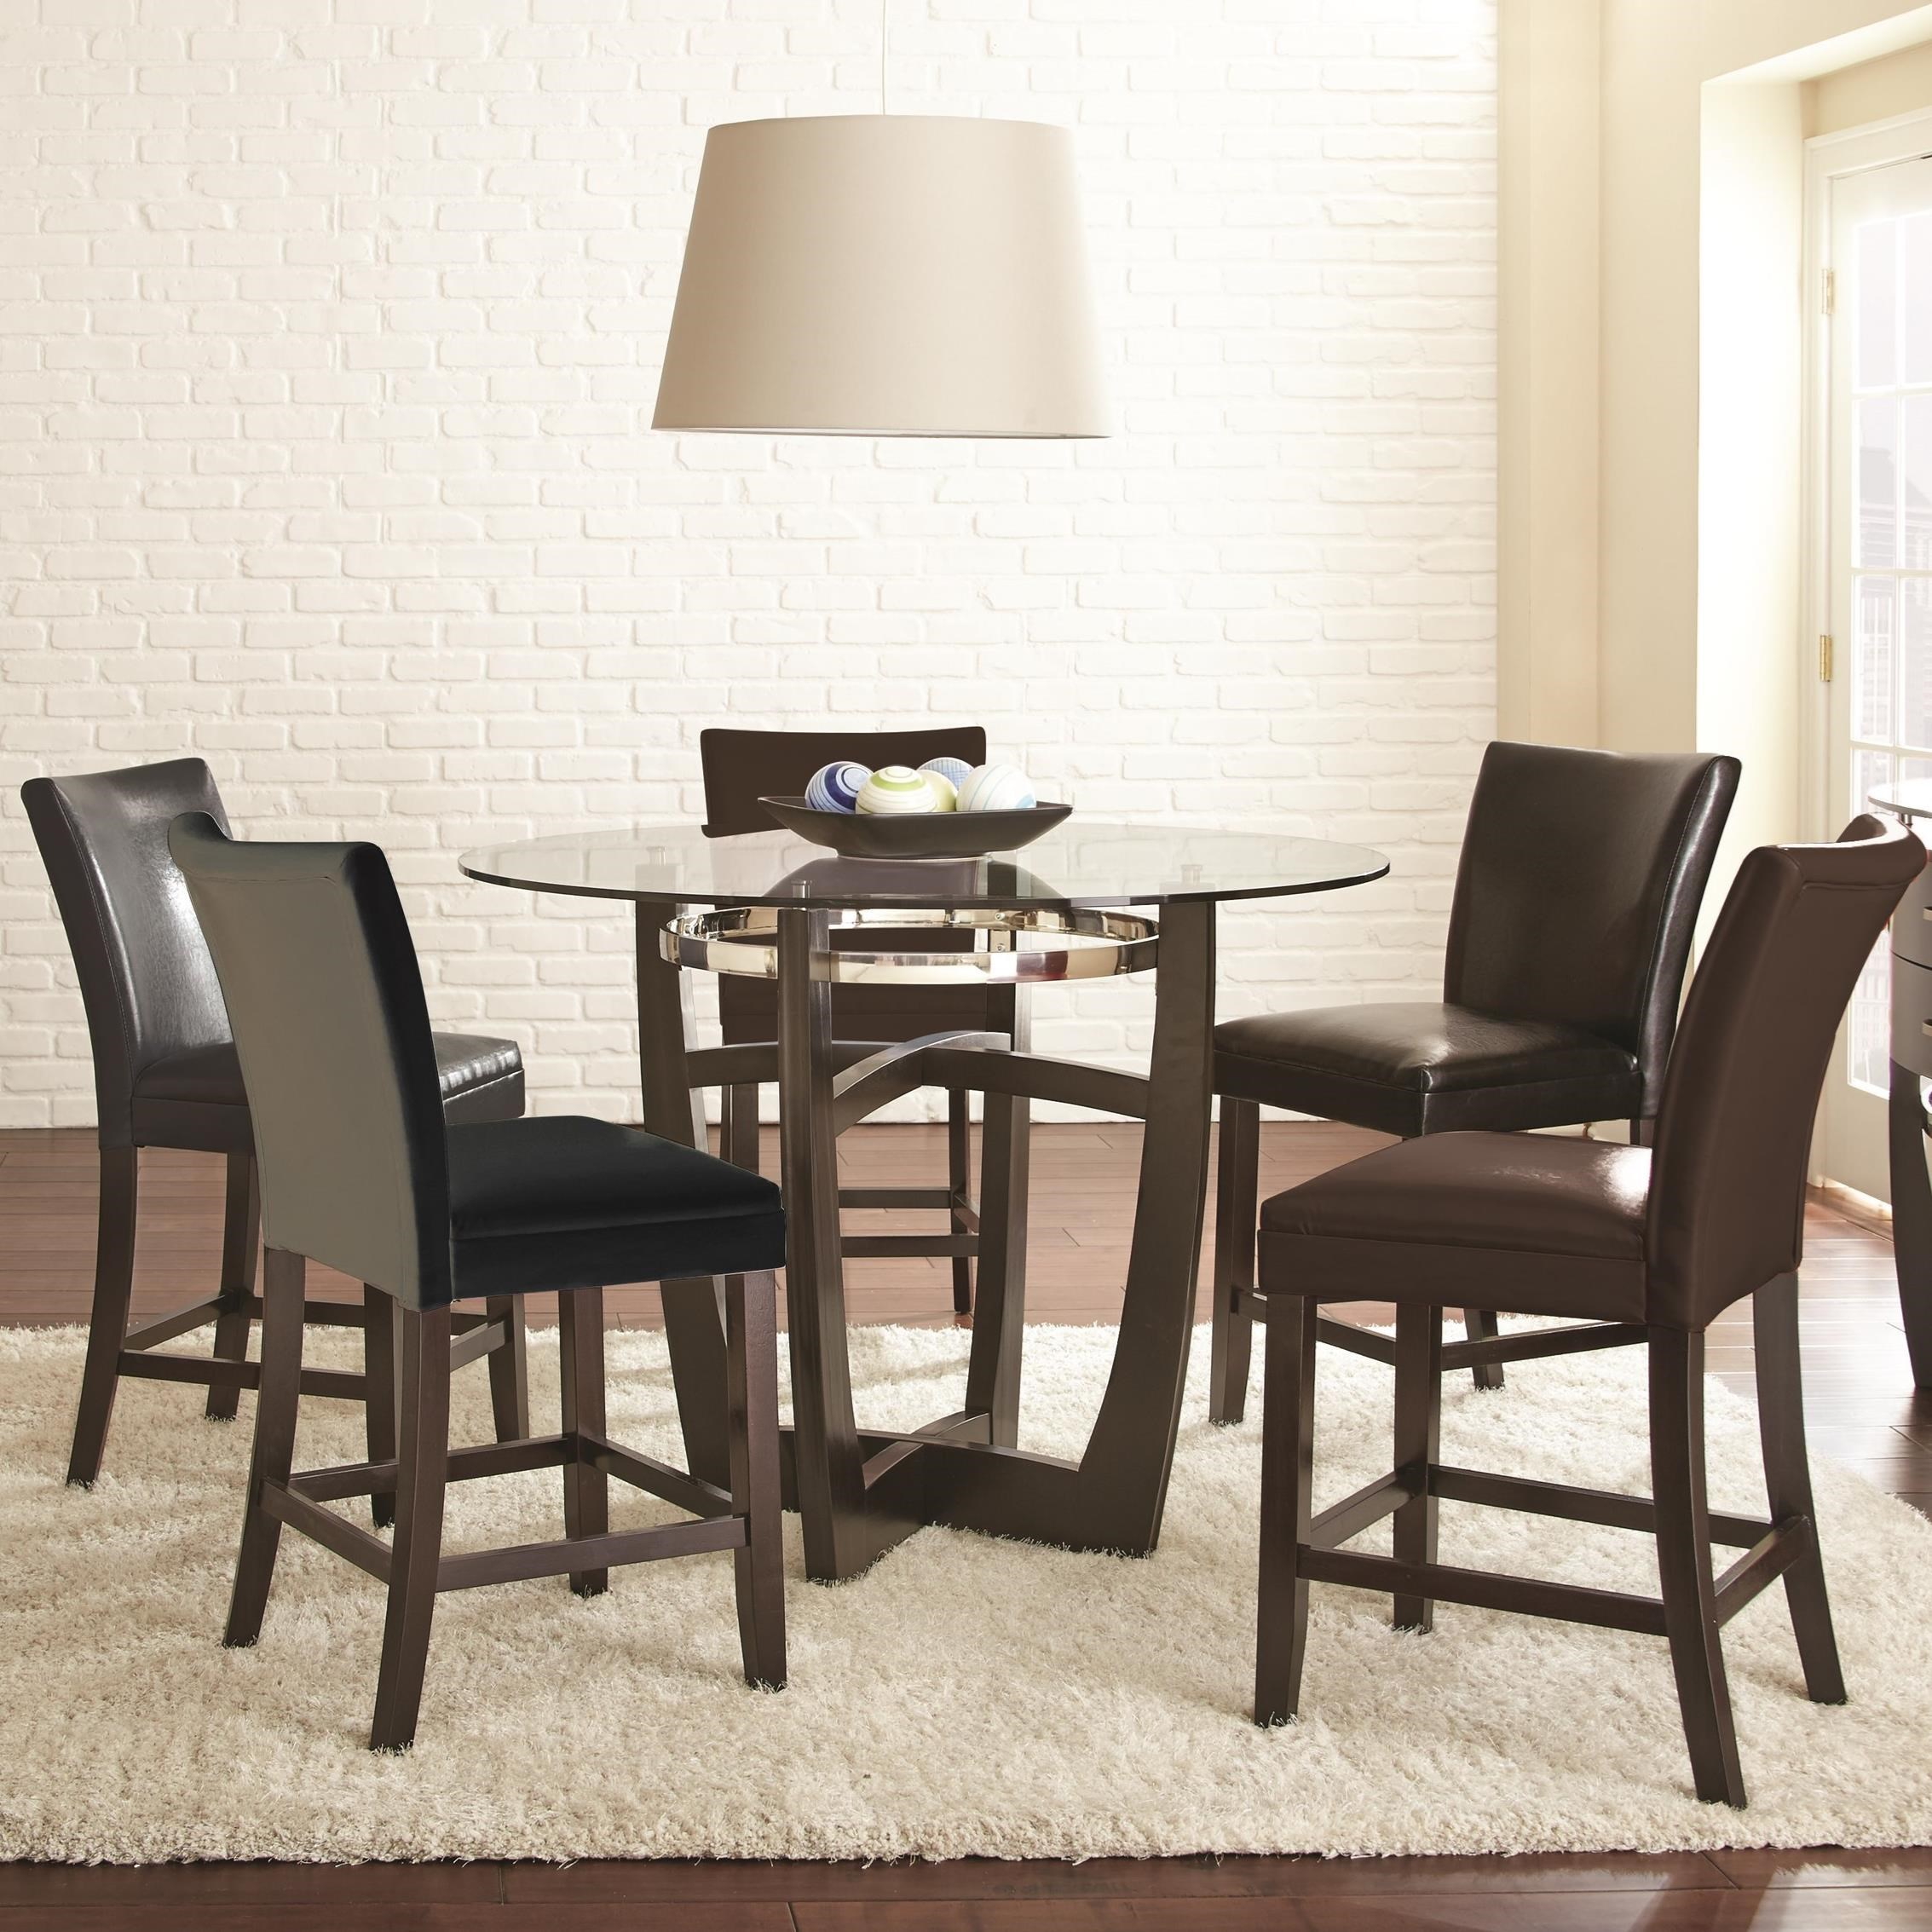 Steve Silver Matinee 6 Piece Counter Height Dining Set. Standing Desk Kickstarter. Black Table And Chairs. Pantry Pull Out Drawers. Beanbag Lap Desk. Desk With Cabinets. Dj Table Facade. Pb Teen Desks. White Reception Desk Salon